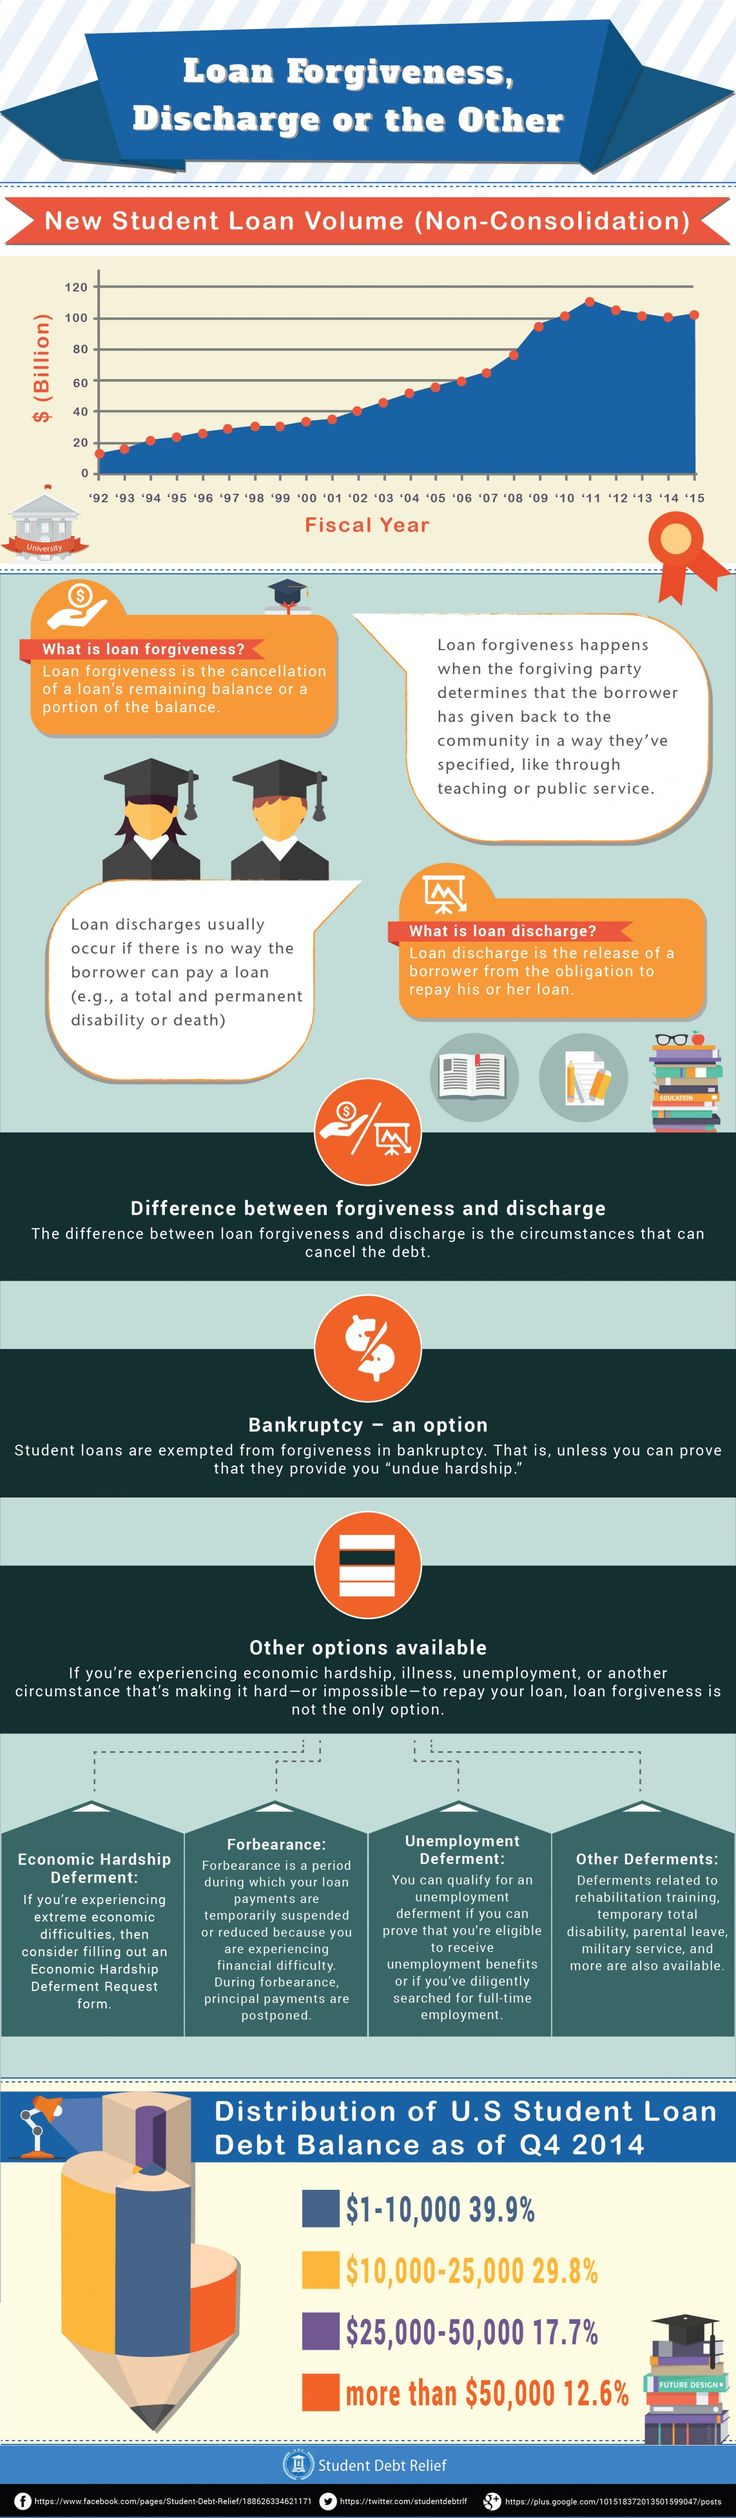 Student Loan Forgiveness, Discharge or the Other #infographic #Finance #Loan #Student